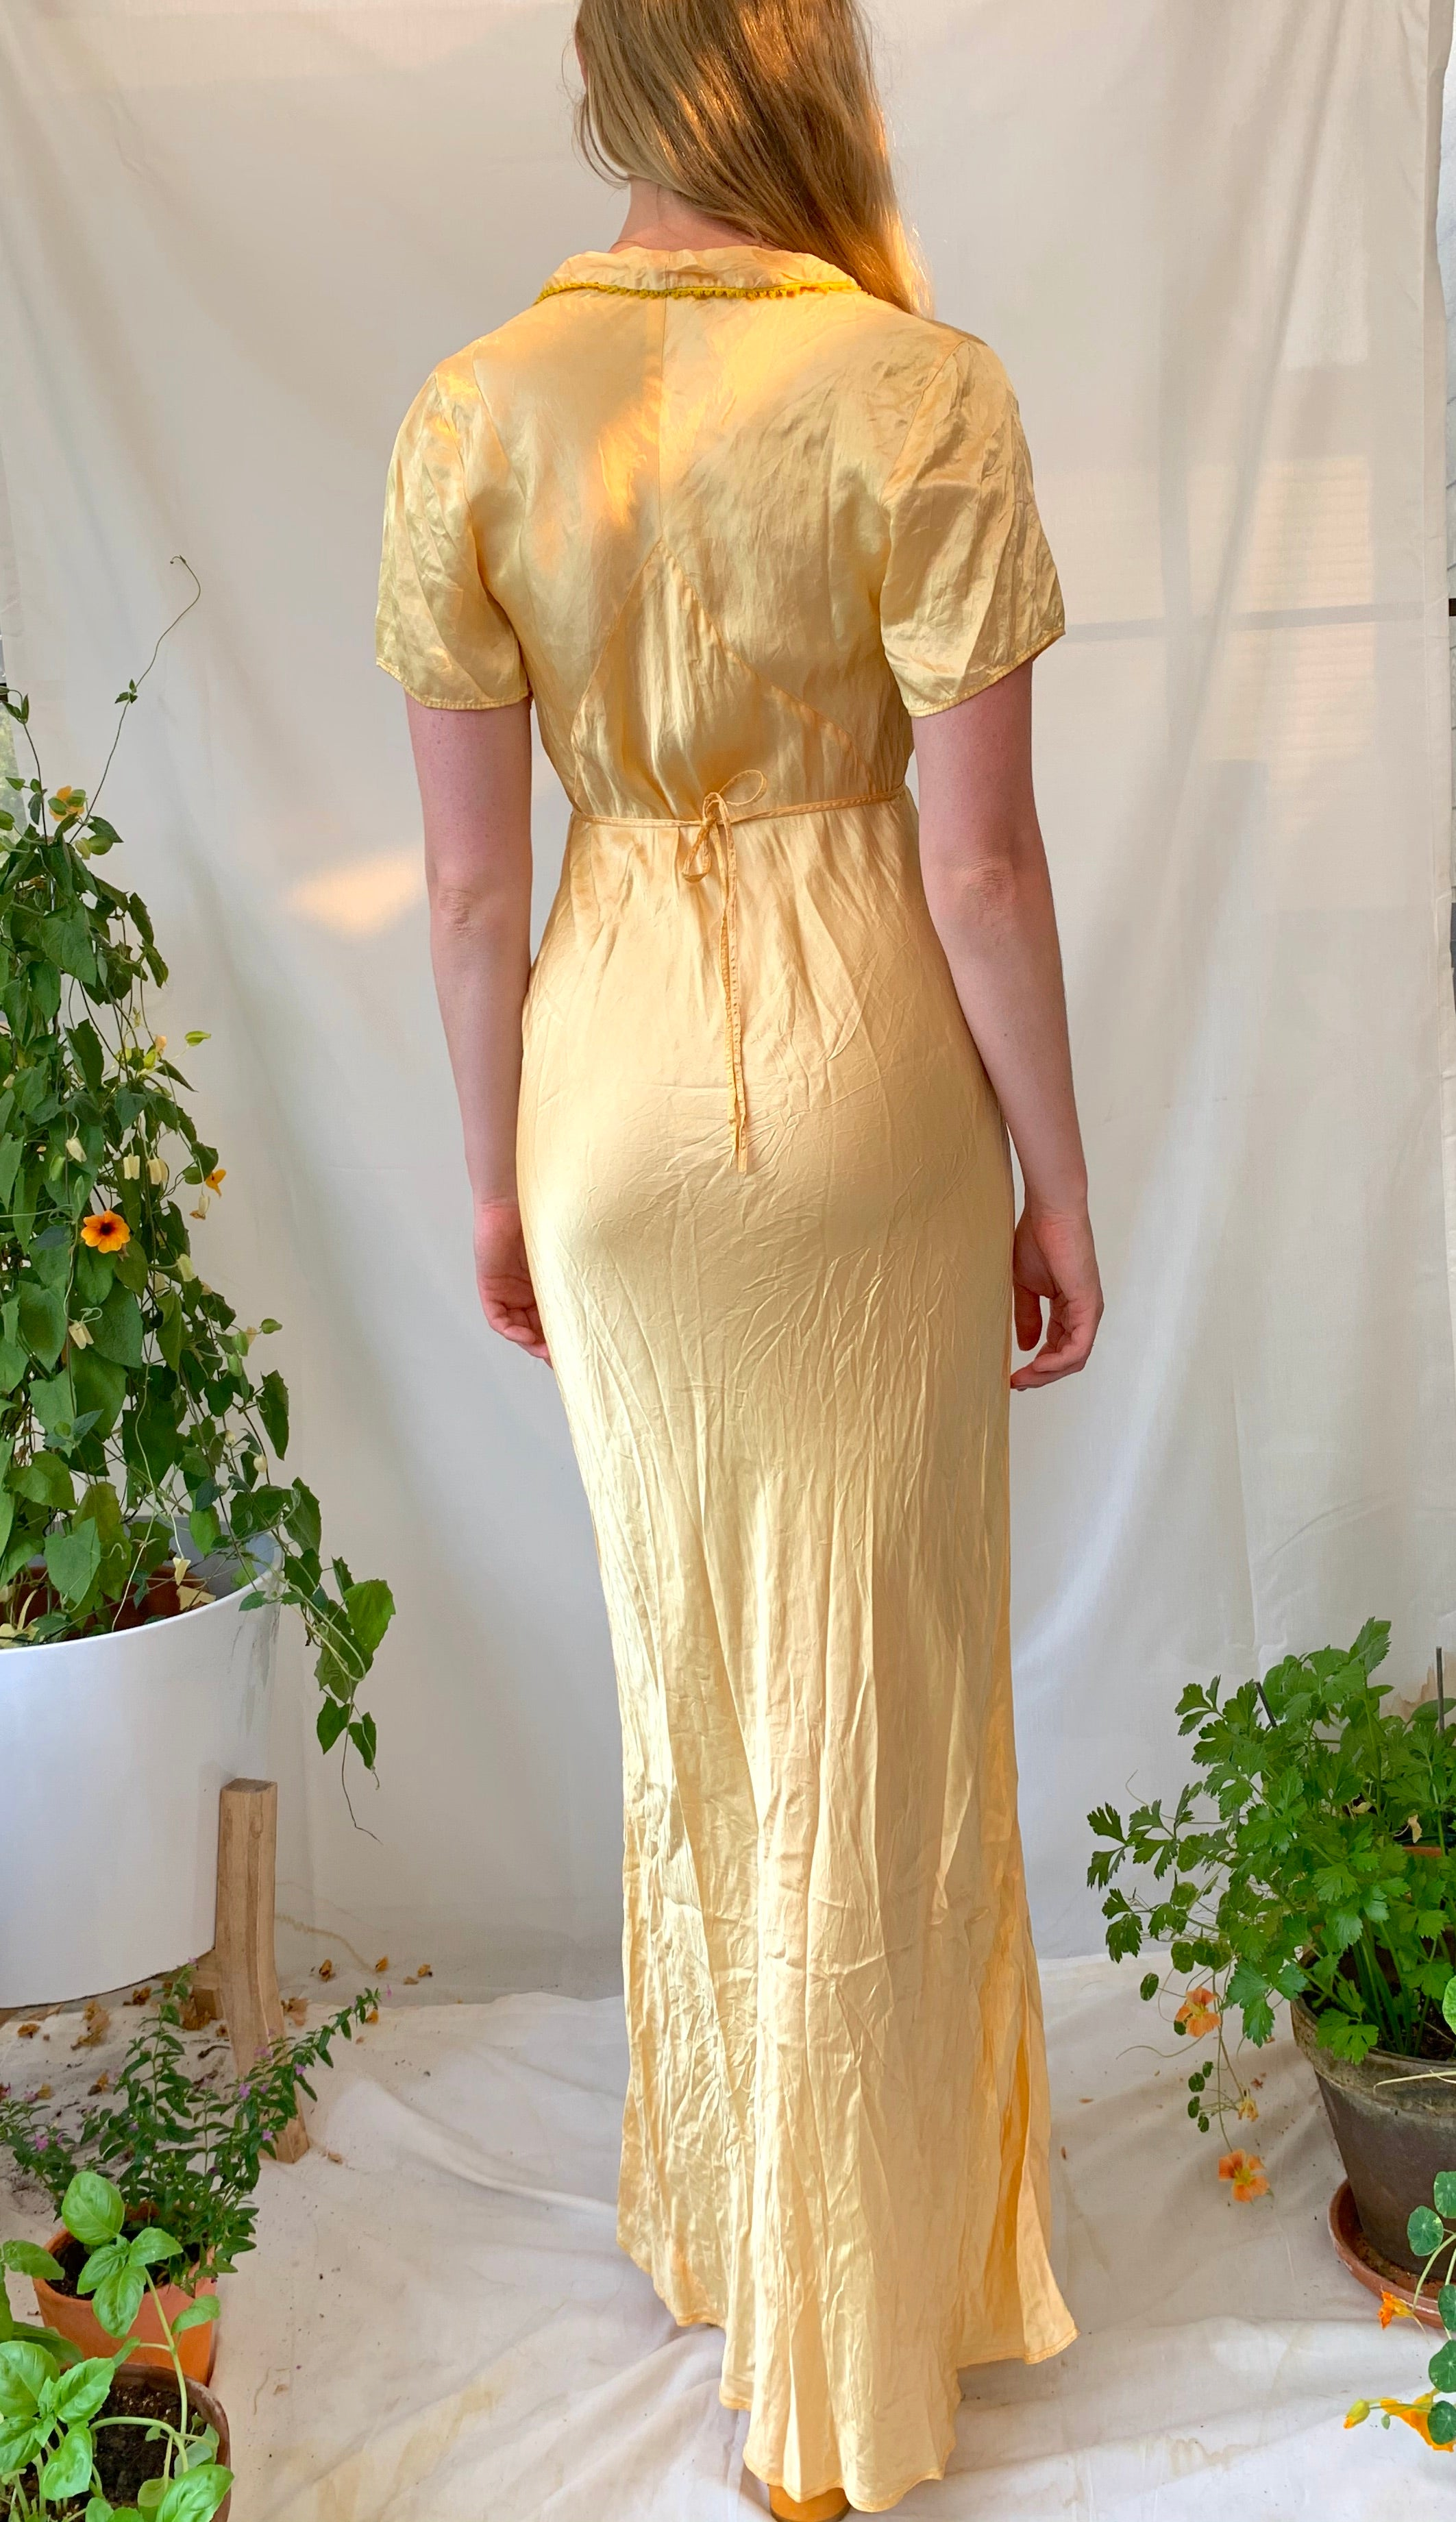 Hand Dyed Clementine Dress With Short Sleeve and Rounded Collar